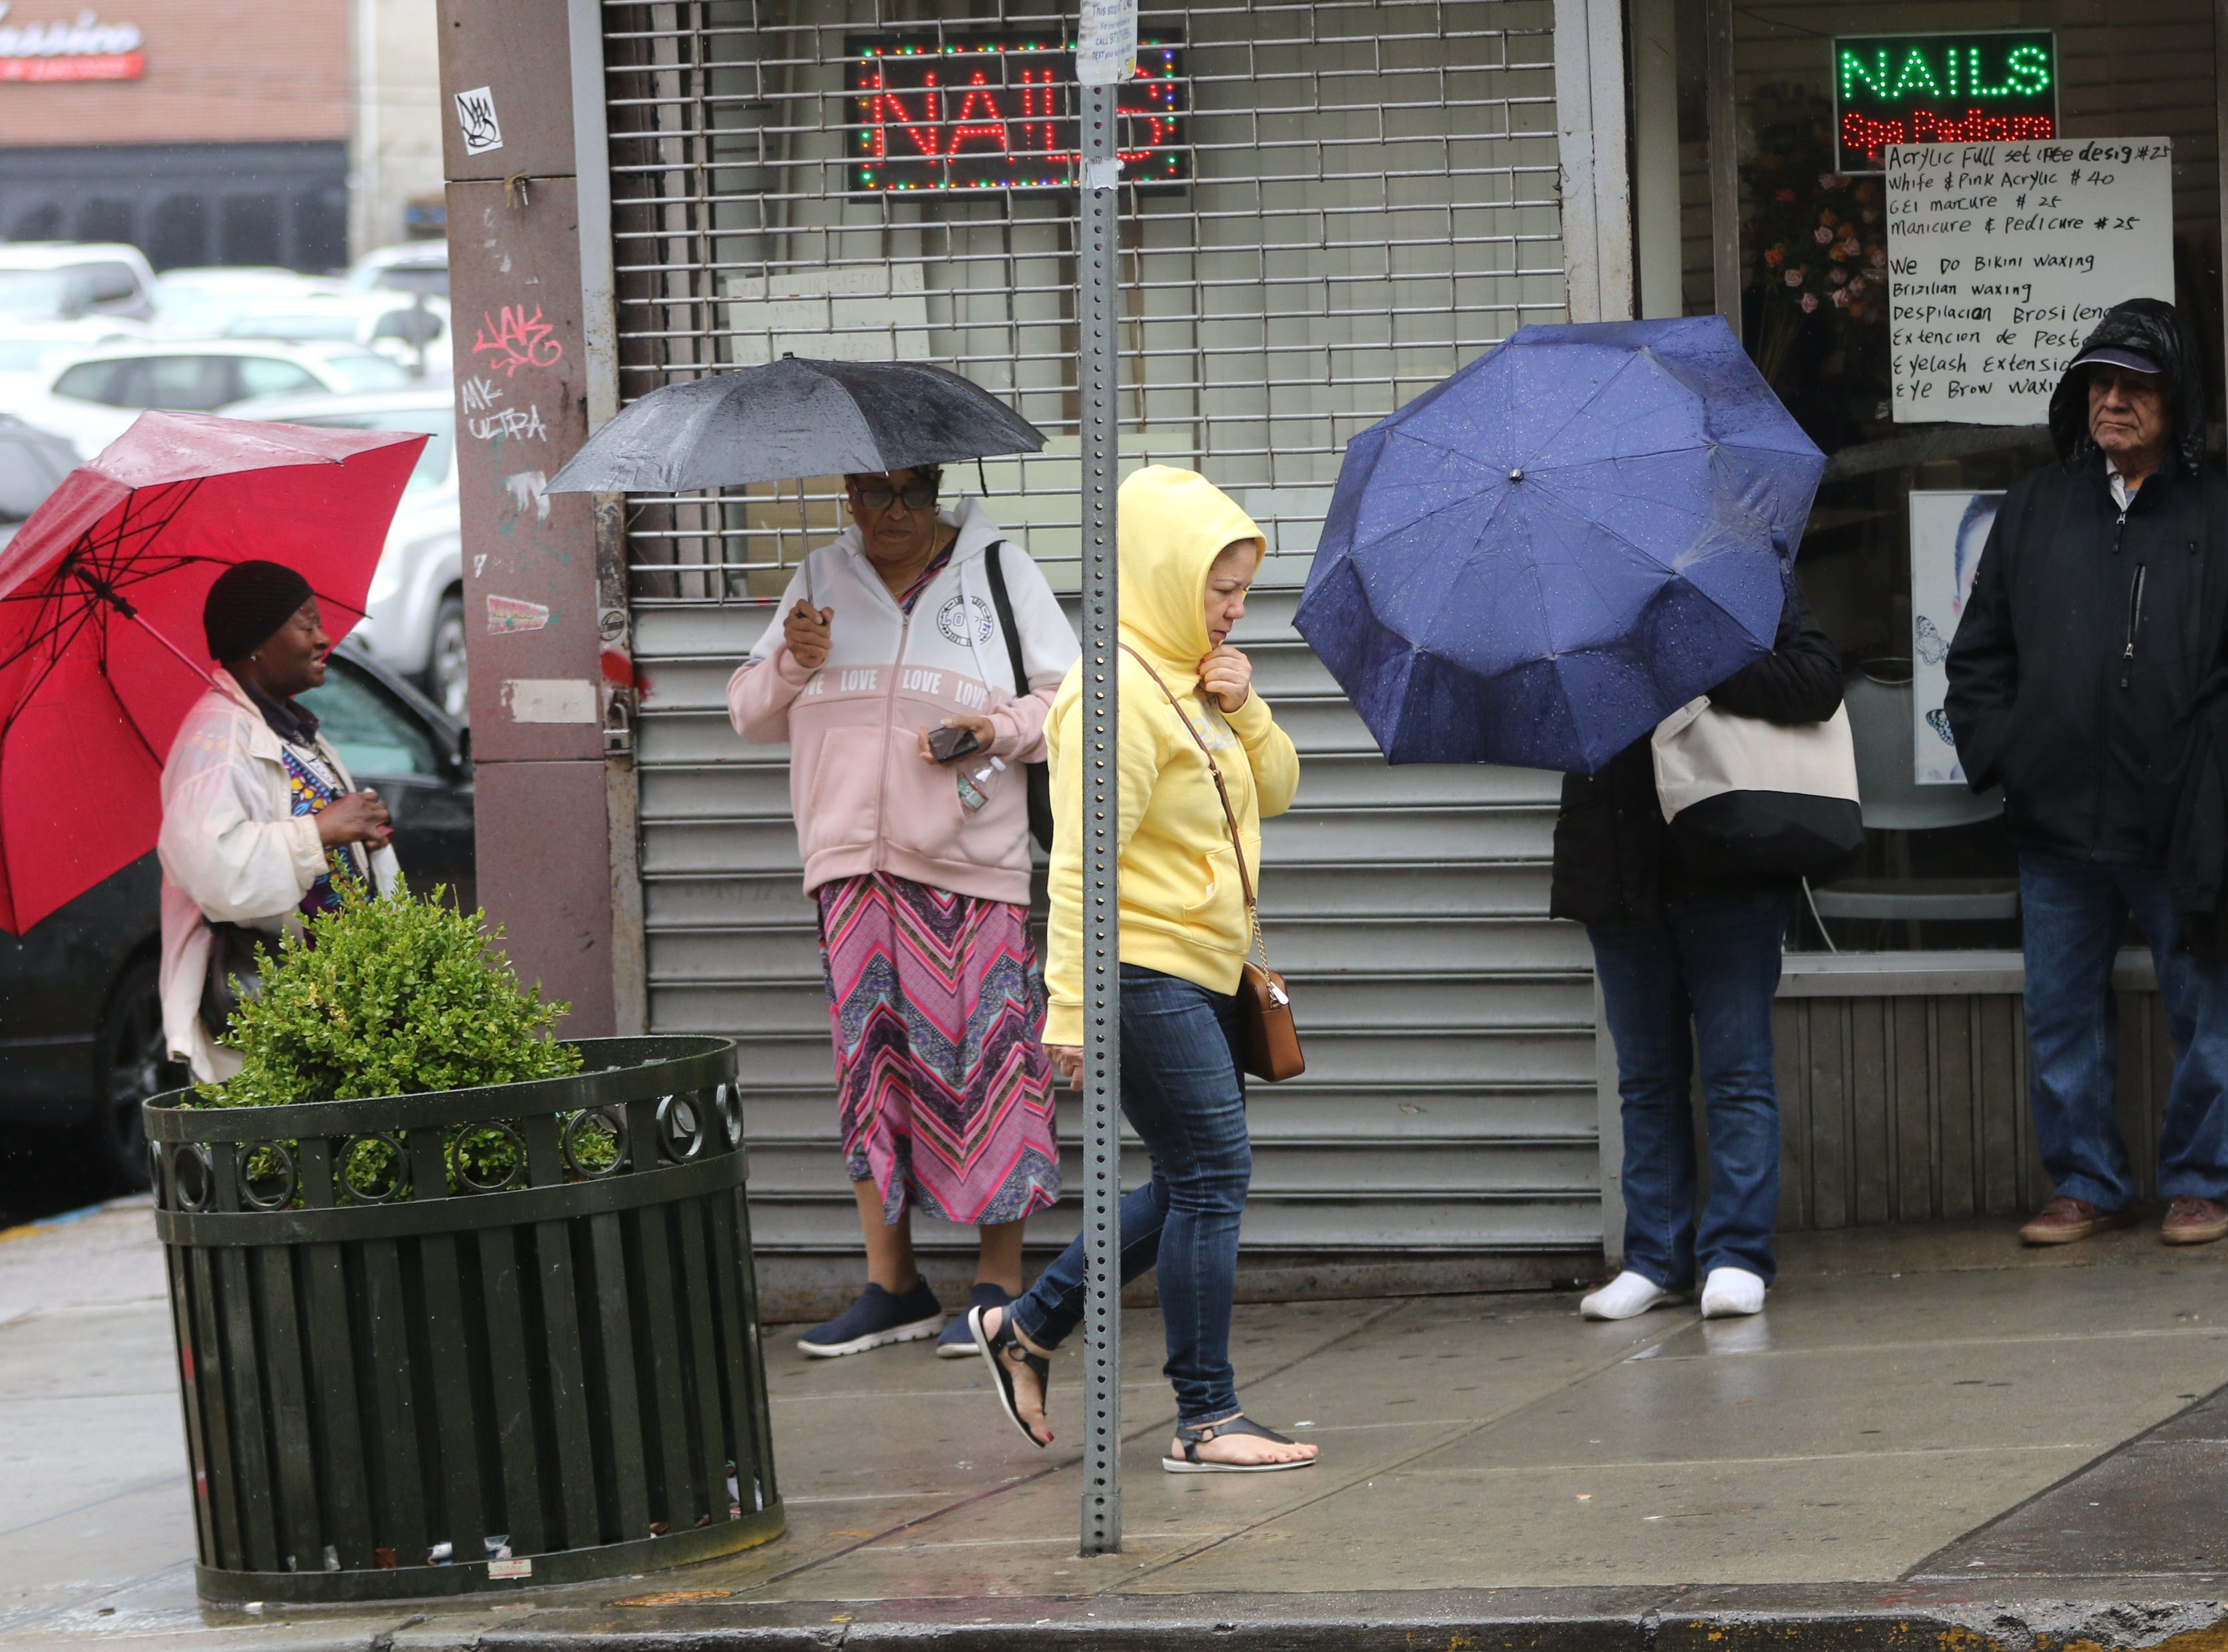 A woman tries to stay dry as she walks past others with umbrellas, on Market St. in Paterson.  Monday, April, 15, 2019